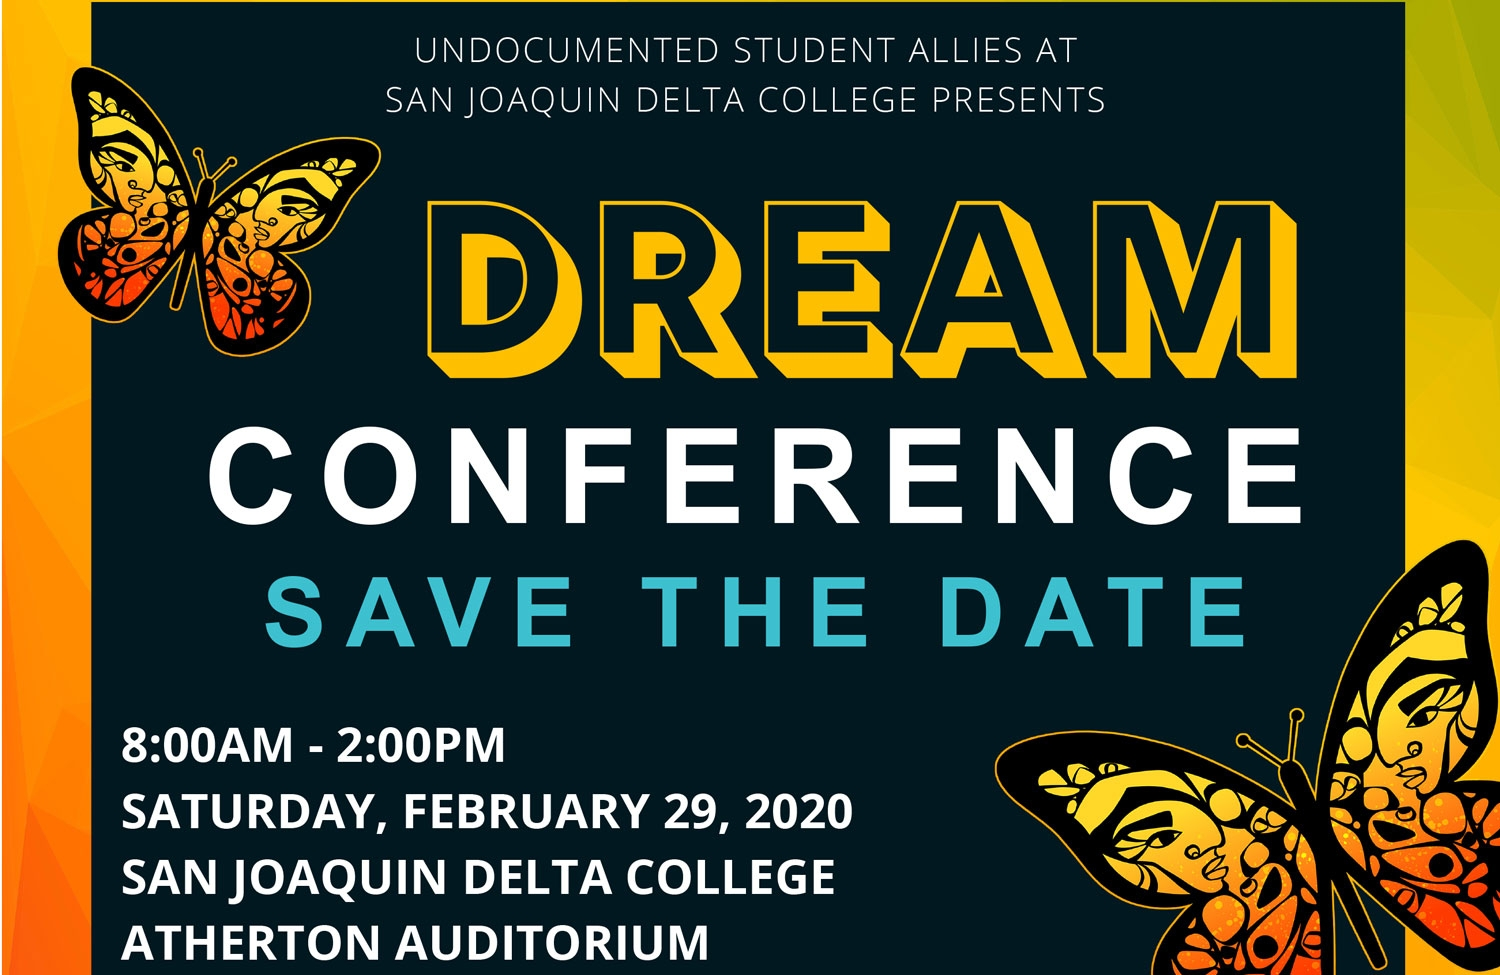 Save the Date for the Dream Conference